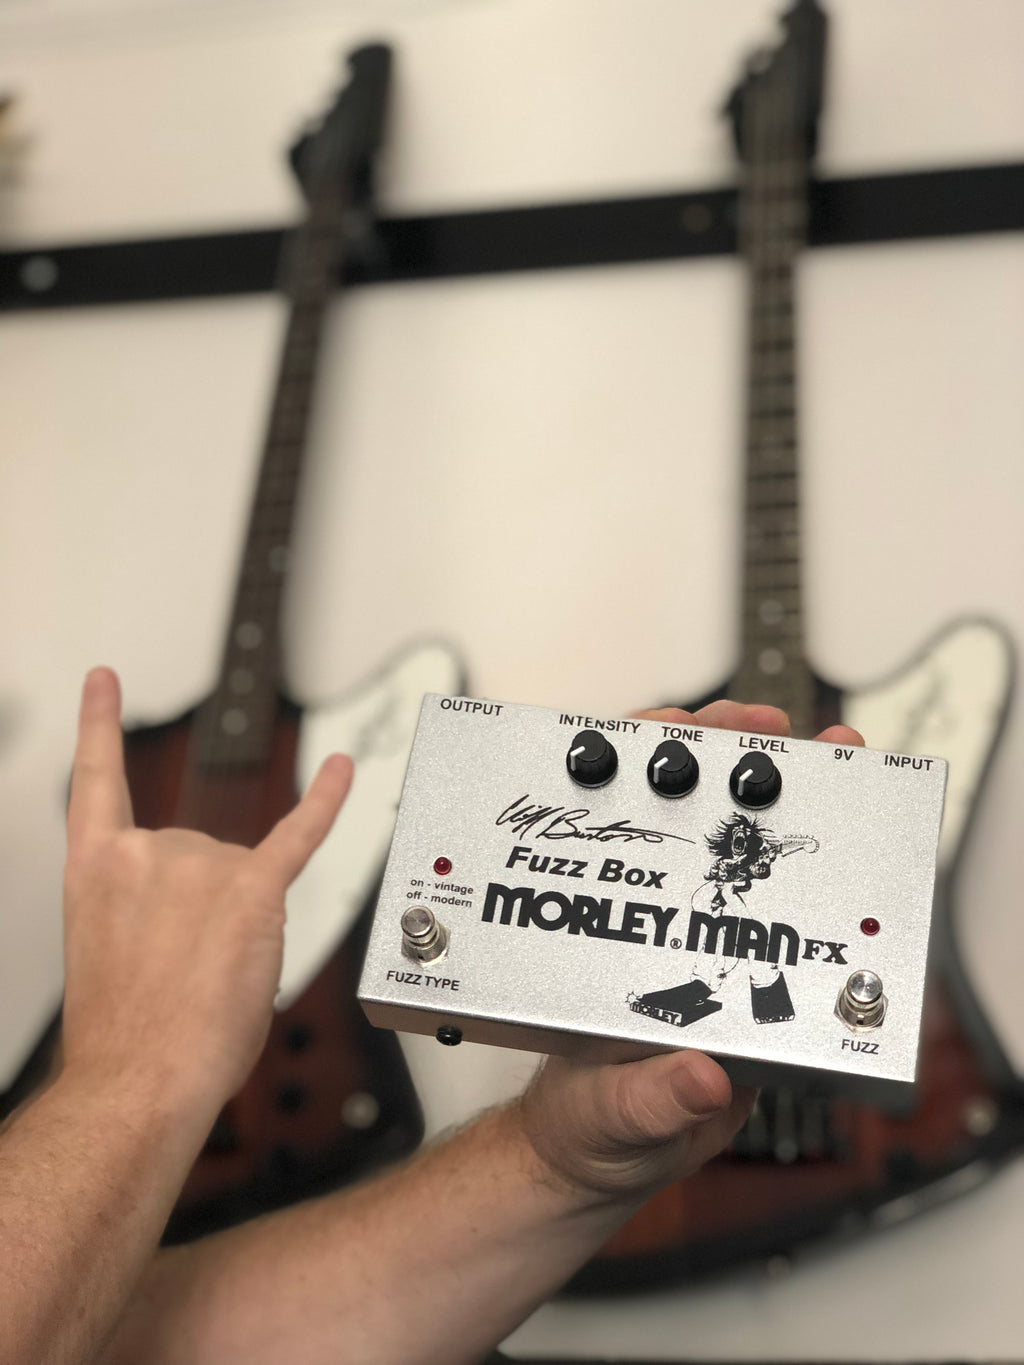 Morley CLIFF BURTON FUZZ BOX BY MORLEY MAN FX